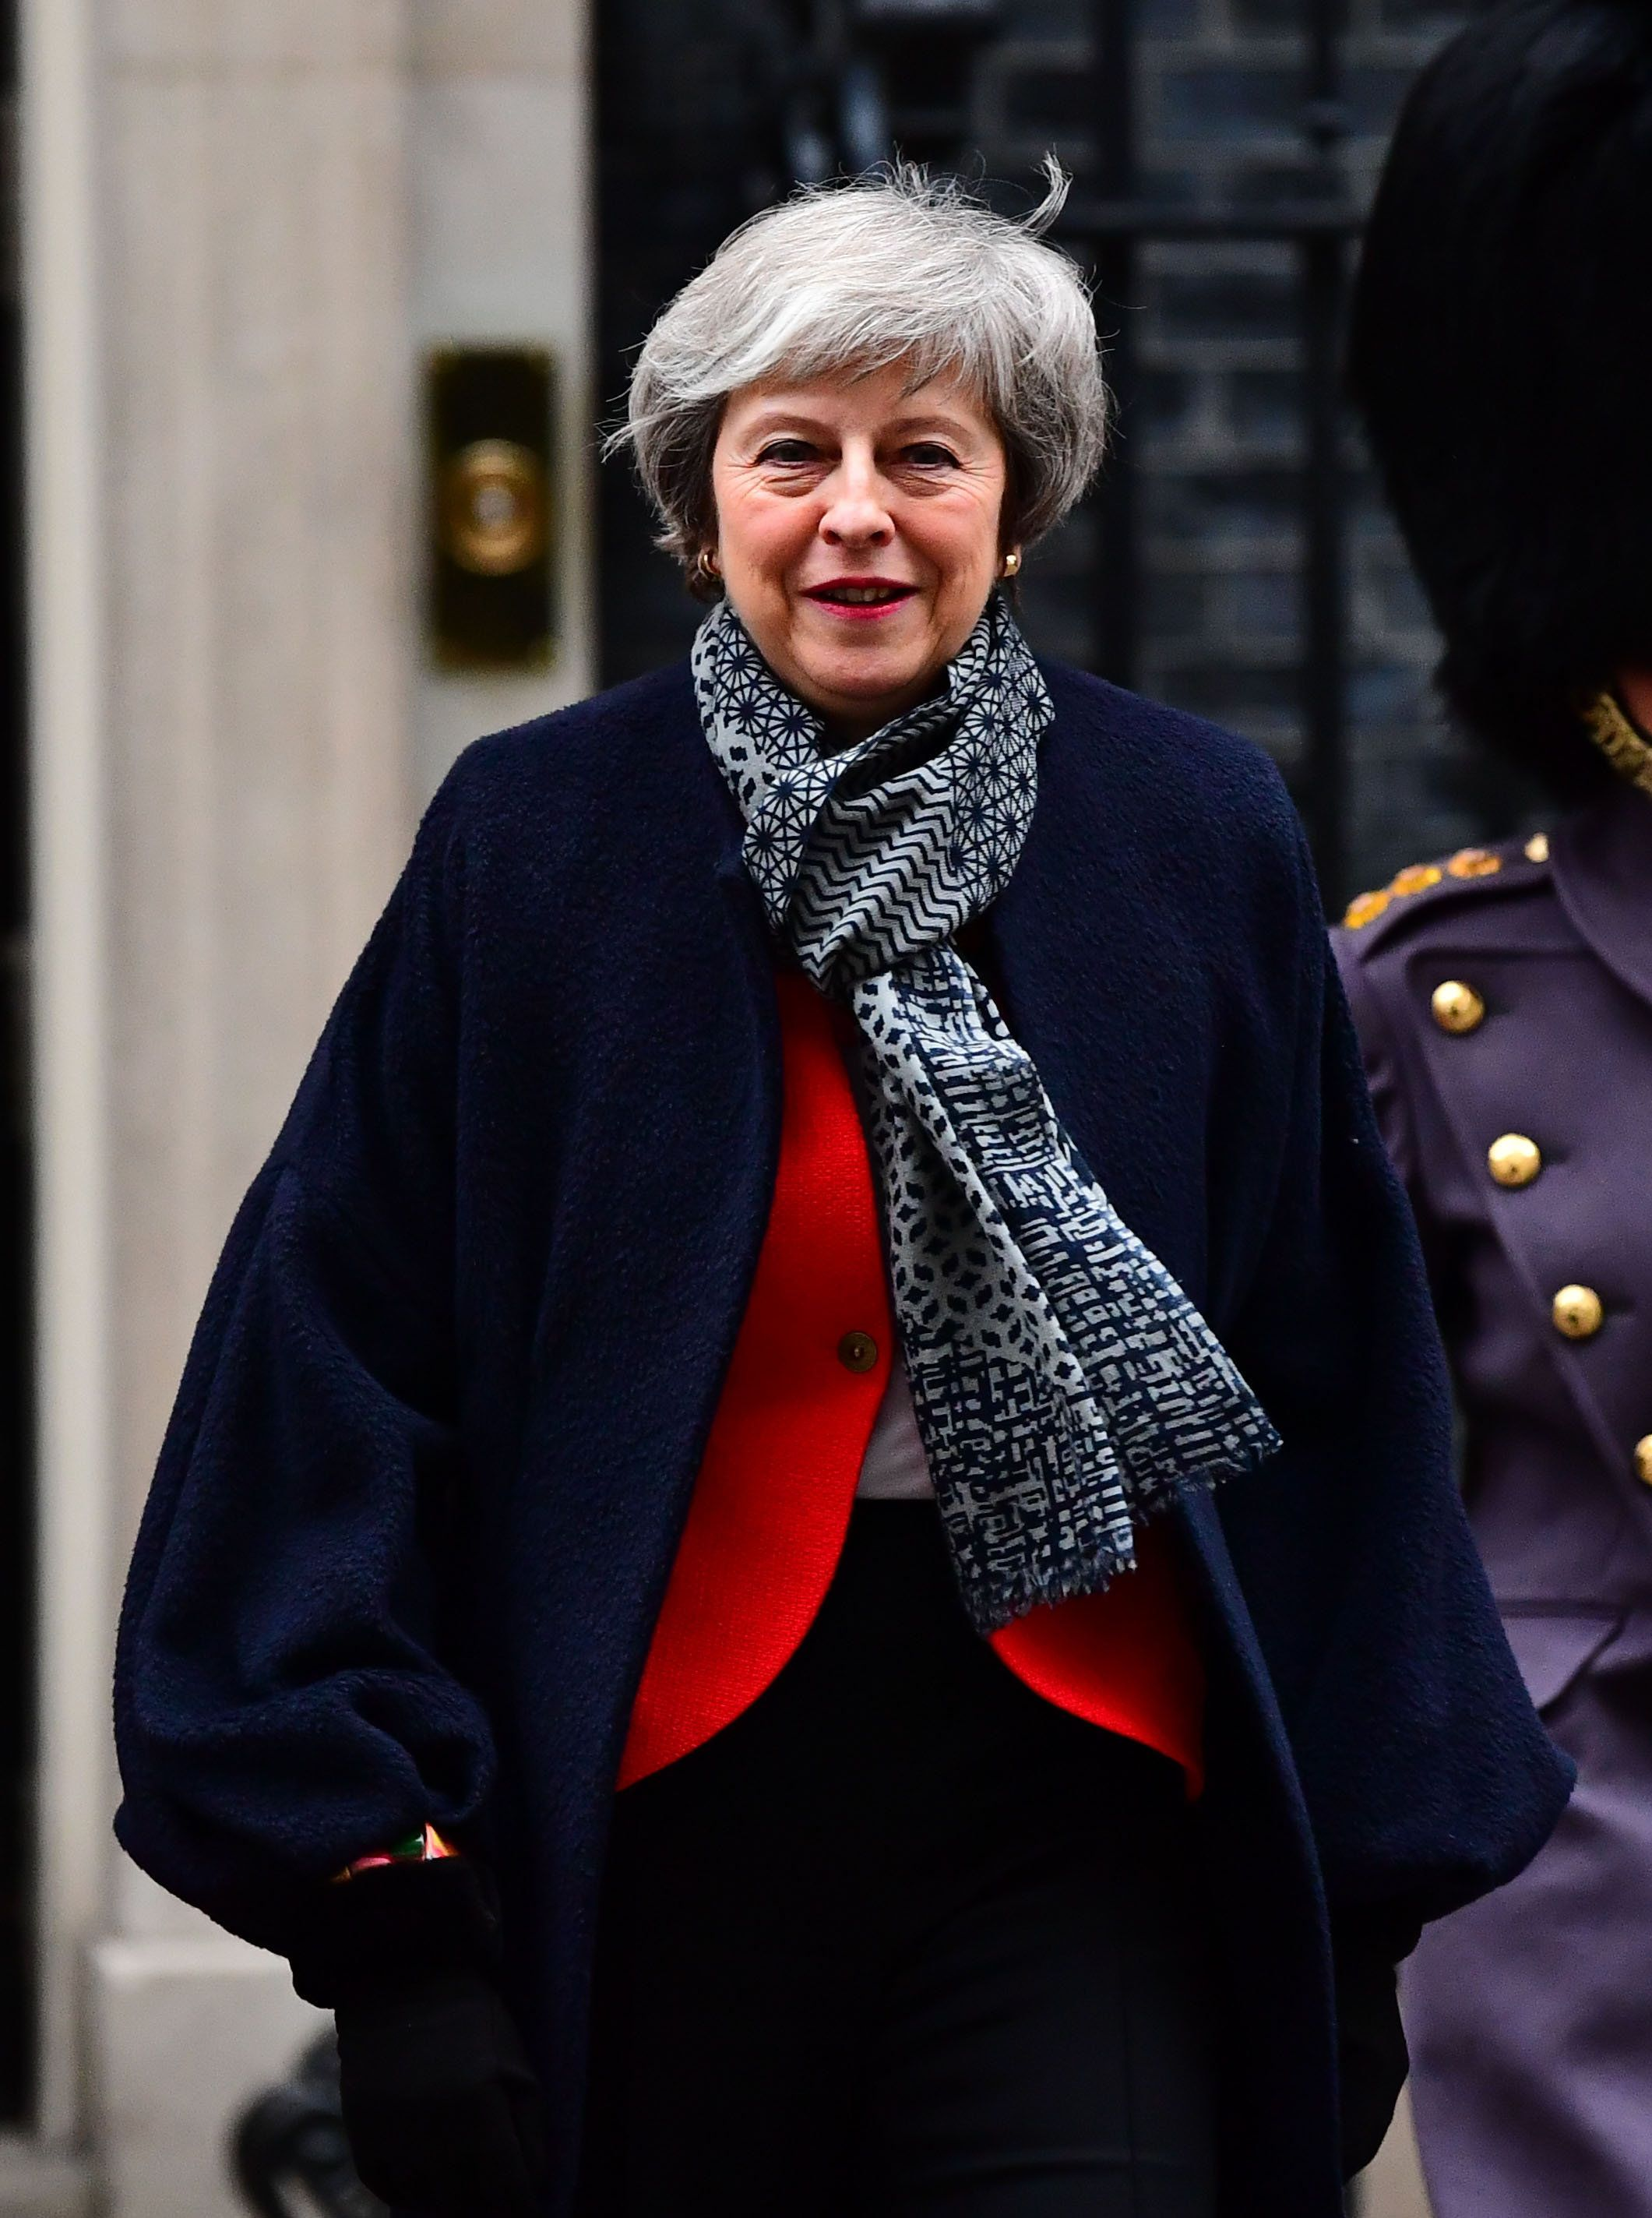 Theresa May Has Made A Final Desperate Plea Ahead Of Tuesday's Big Brexit